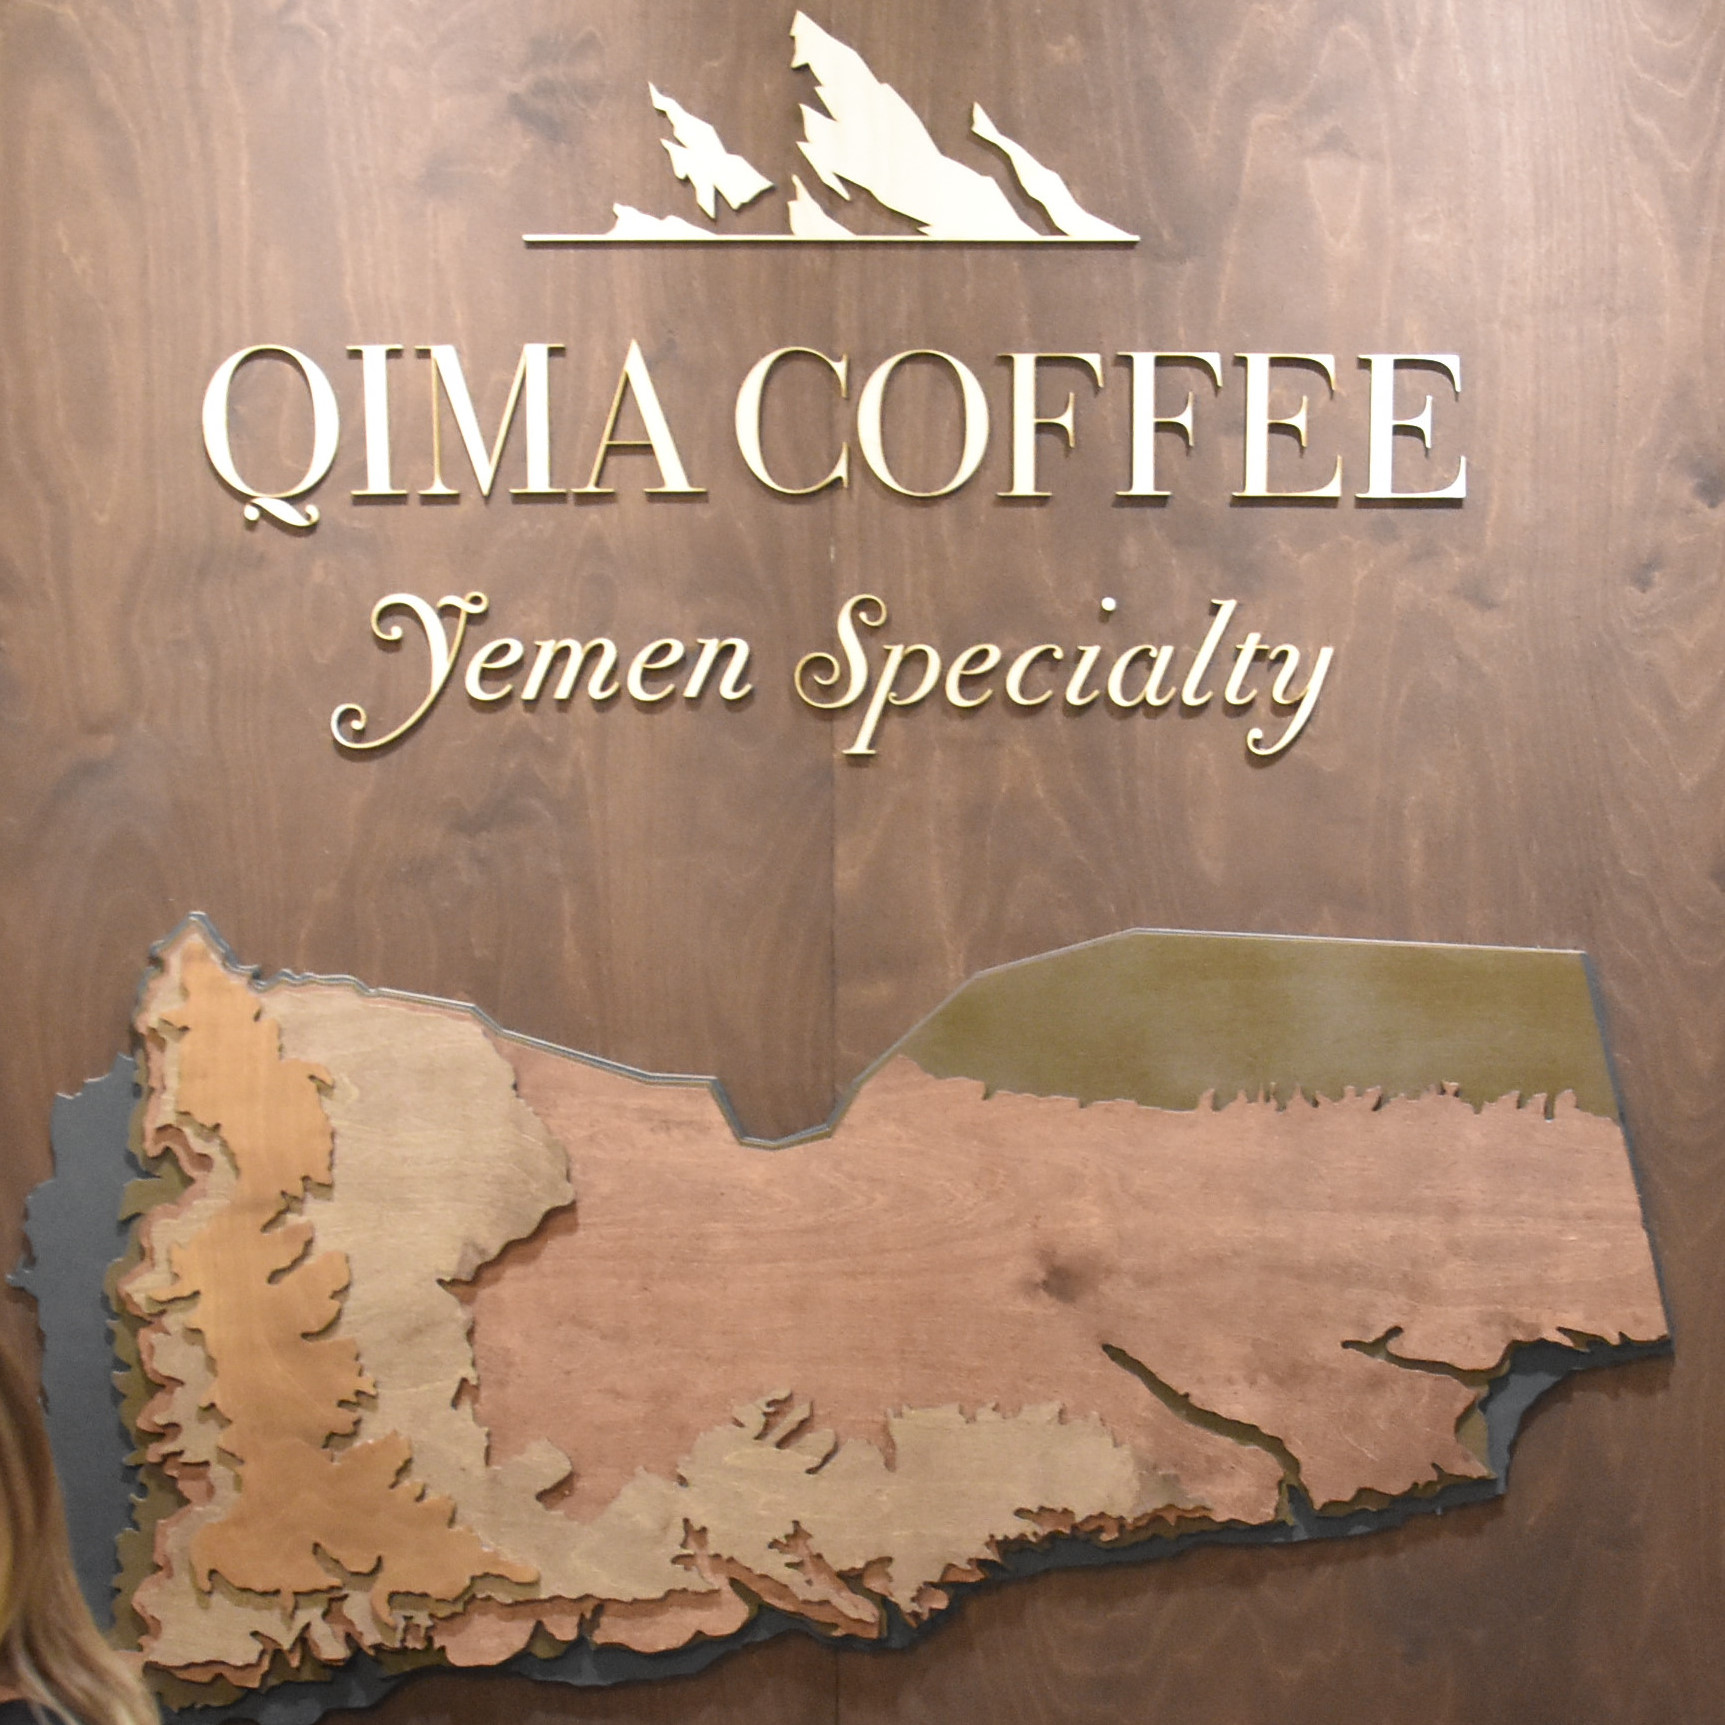 Detail from the stand of Qima Coffee, including a wooden relief map of Yemen, taken from the stand at the 2019 London Coffee Festival.